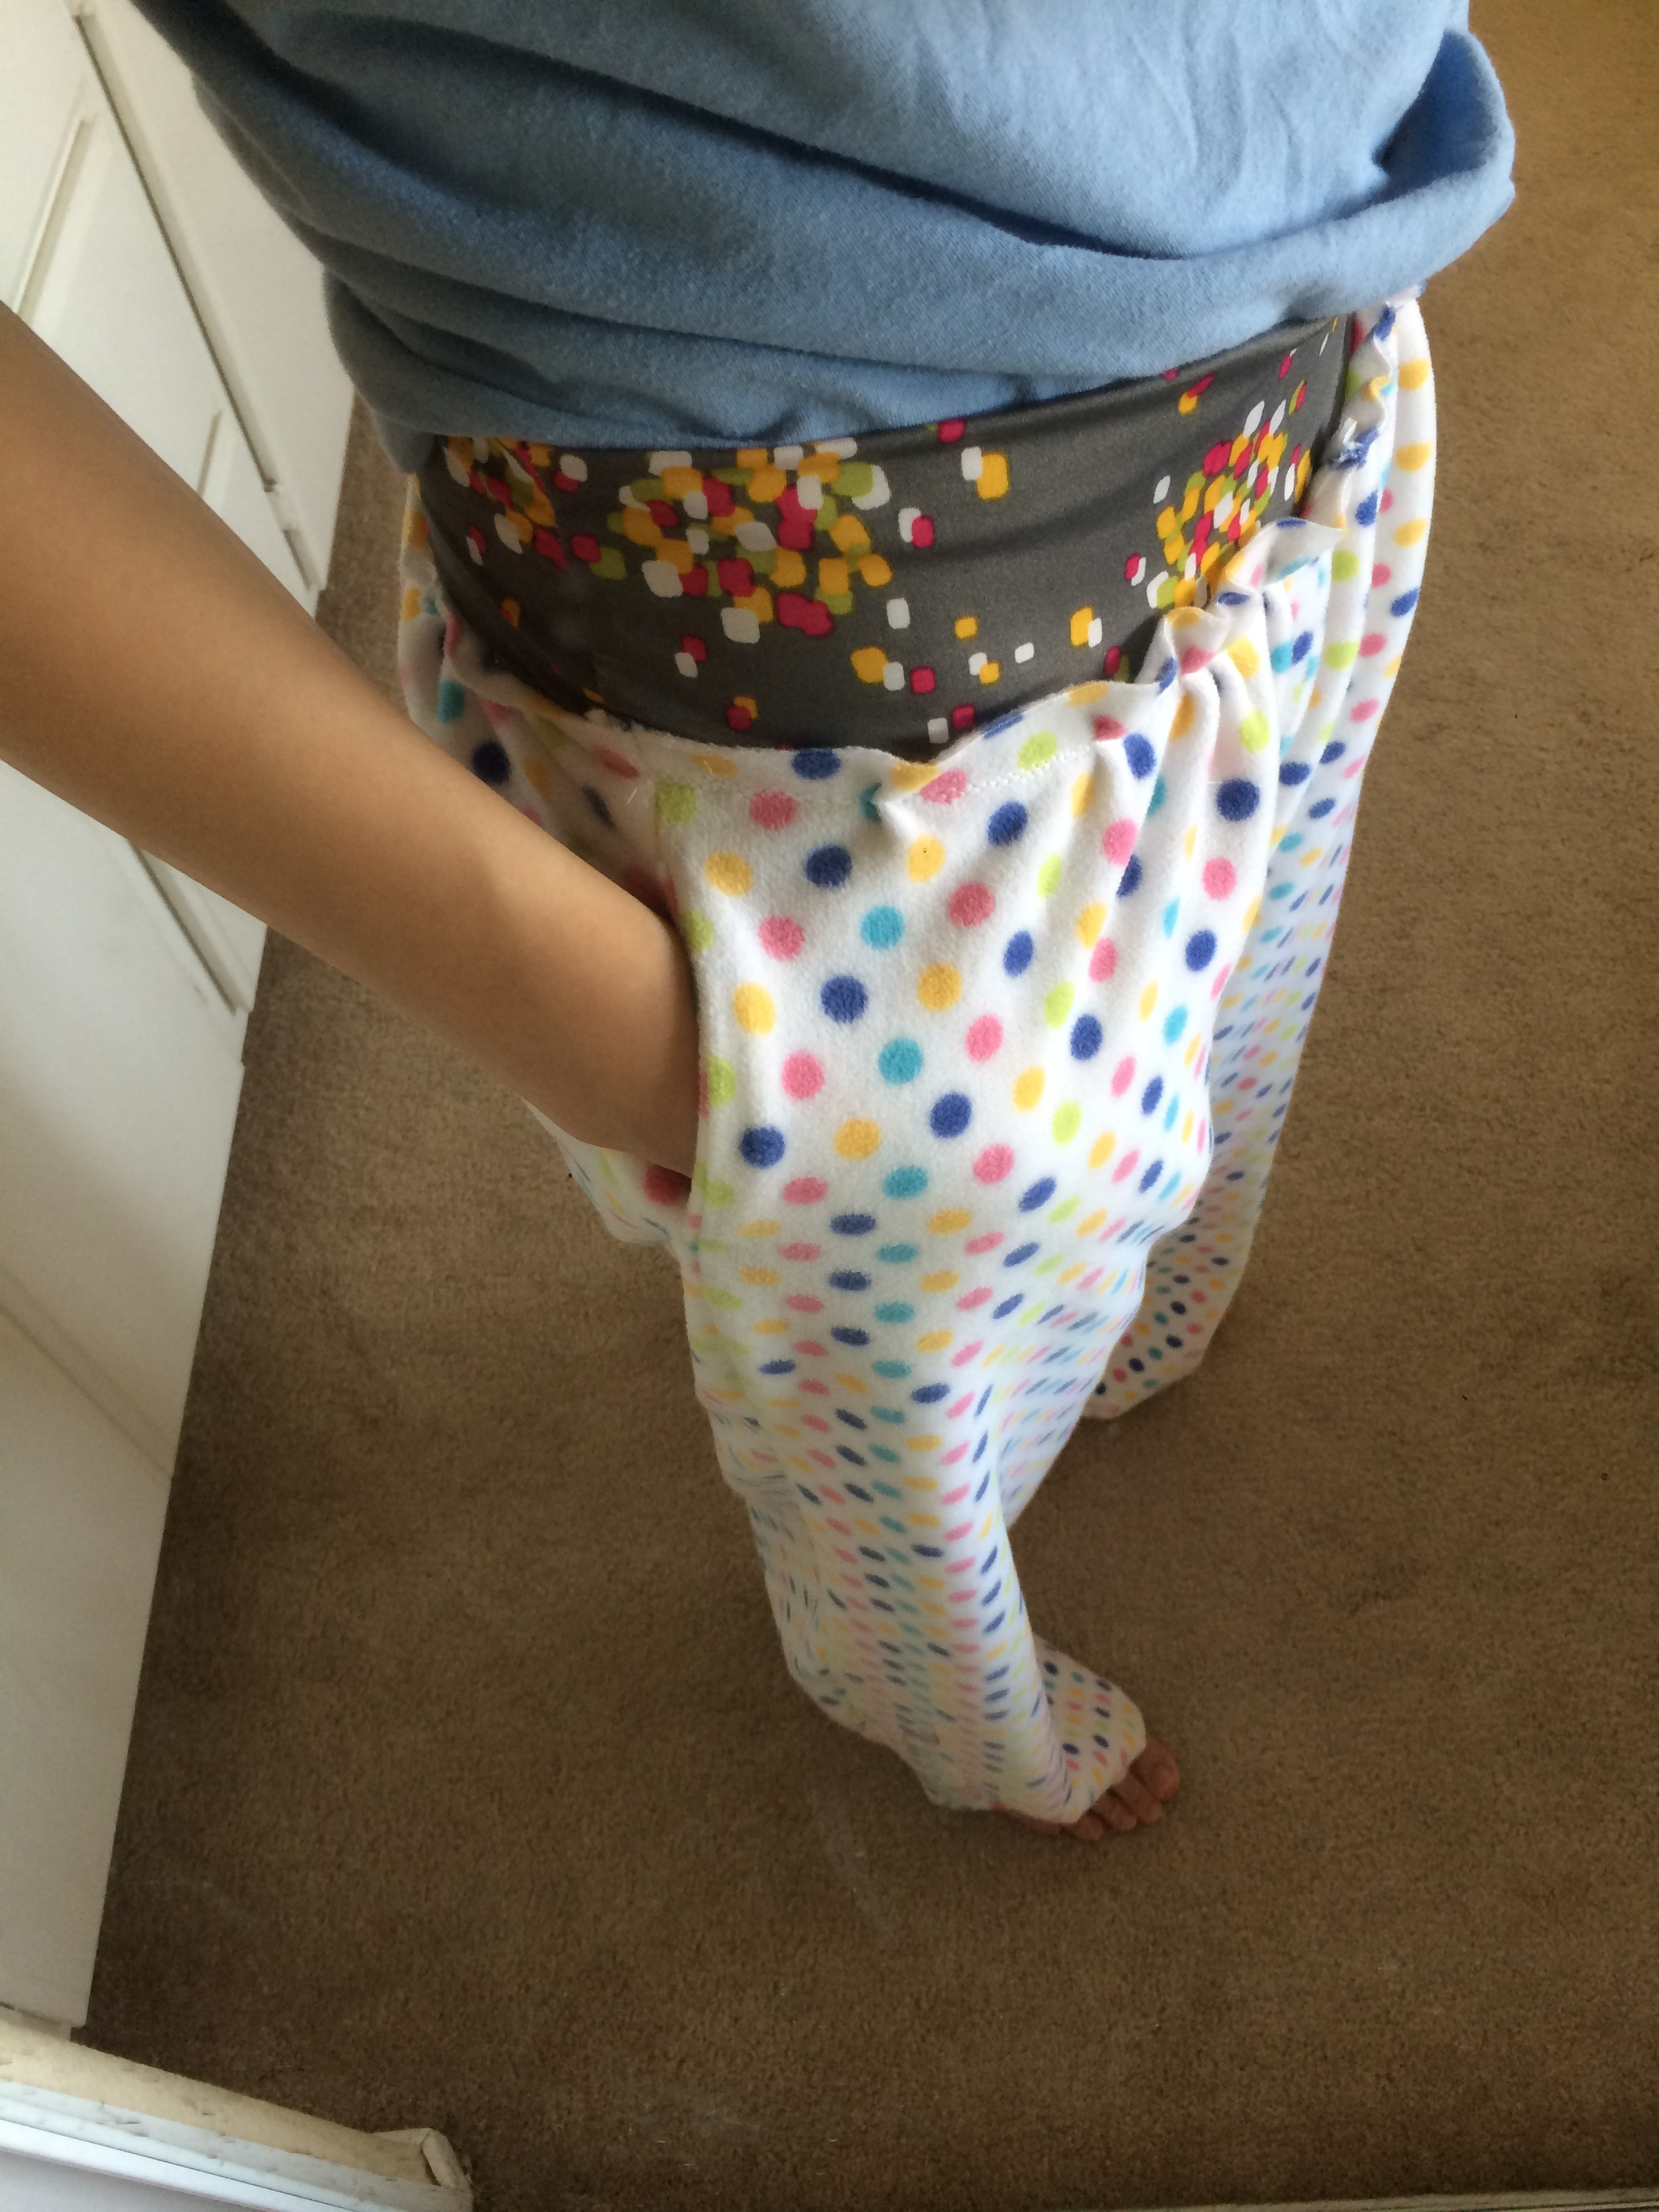 Showing off the pockets, I love pockets! The waistband is the same gray confetti that I used for my skirt. My husband keeps thinking that I'm wearing a skirt under my pajamas!